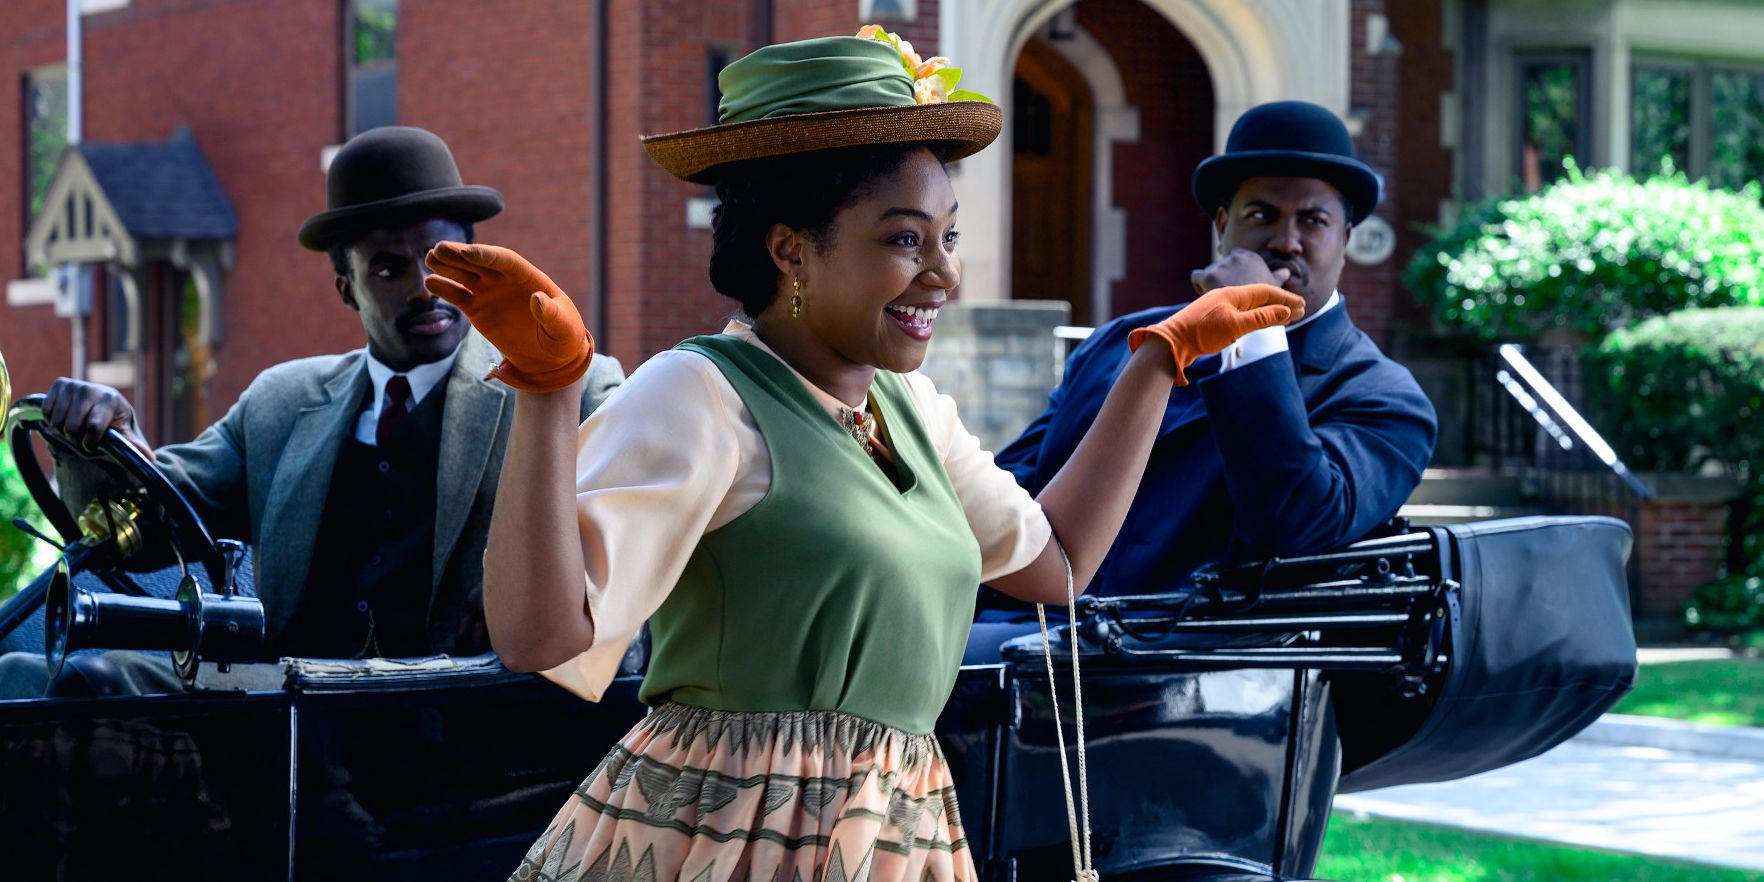 Tiffany Haddish plays Lelia, Madam C.J. Walker's daughter